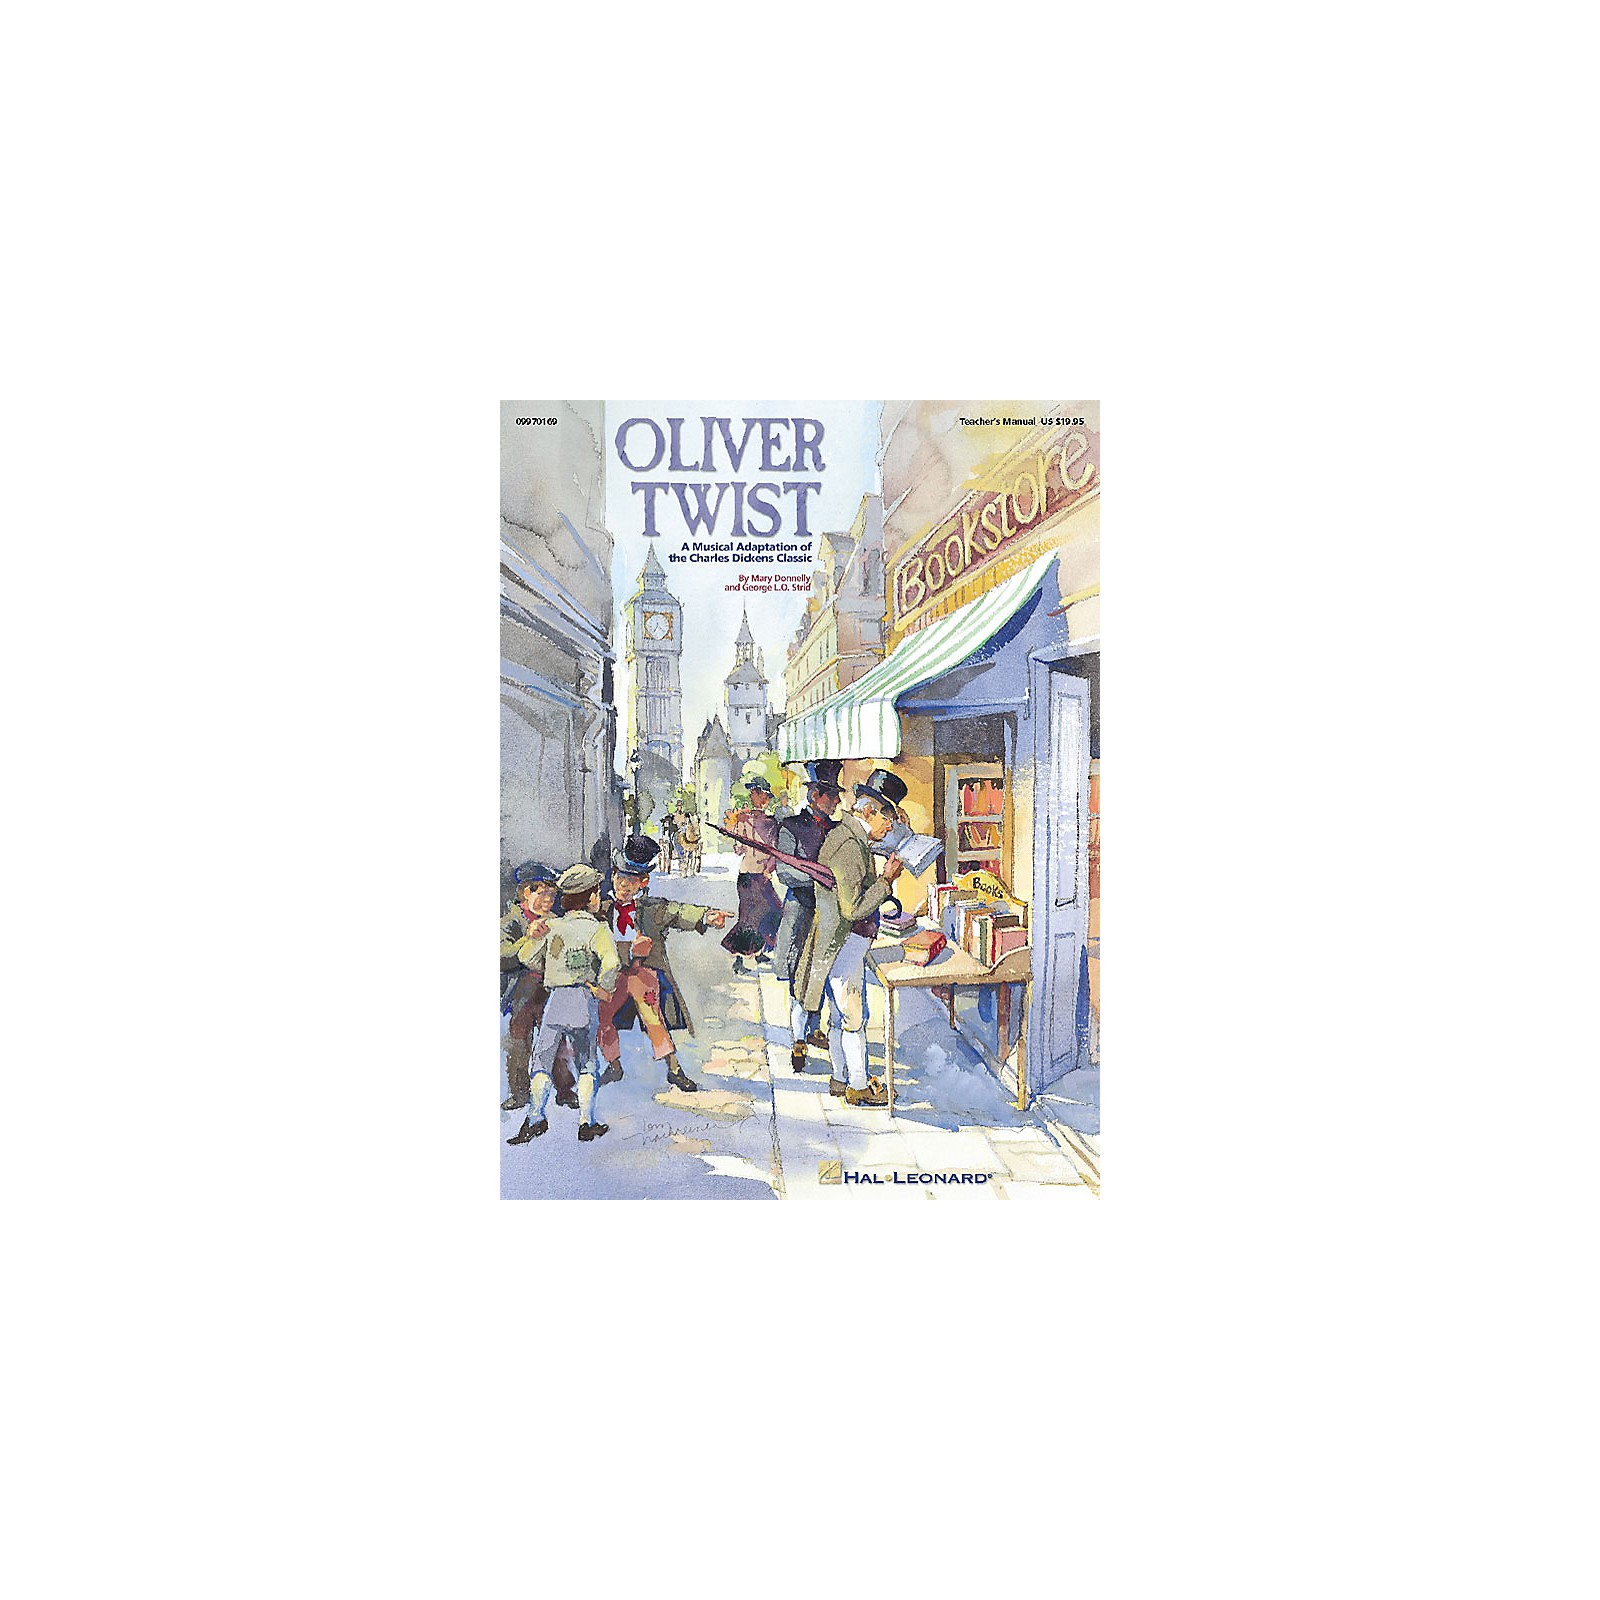 Hal Leonard Oliver Twist - A Musical Adaptation of the Charles Dickens Classic (Musical) ShowTrax CD by Billingsley